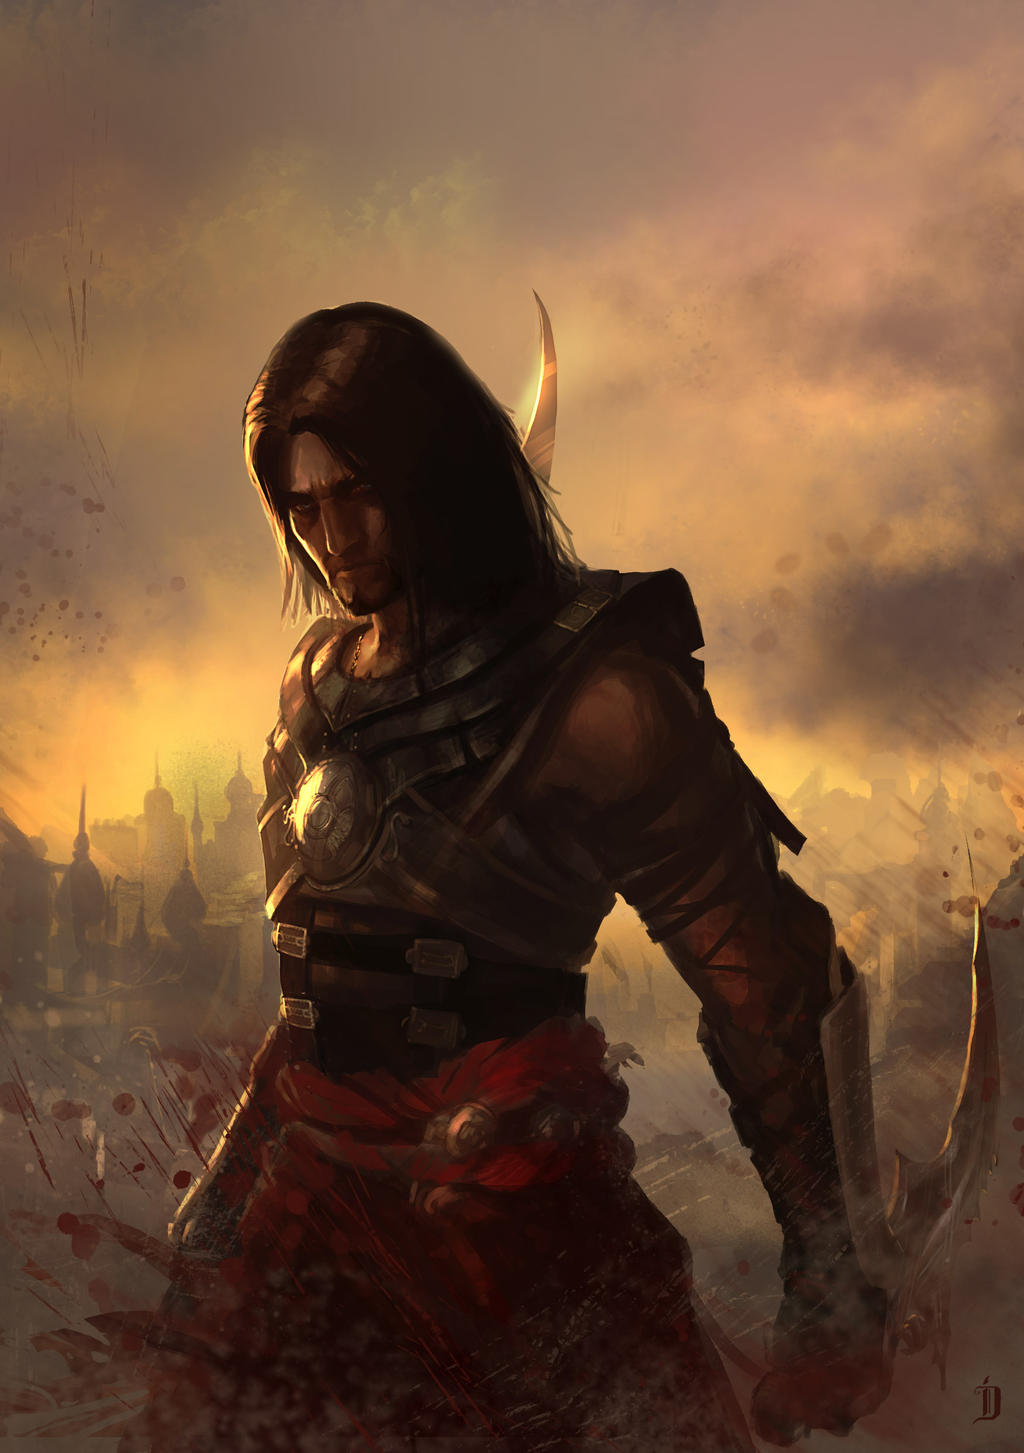 prince of persia fan artcatalinianos on deviantart